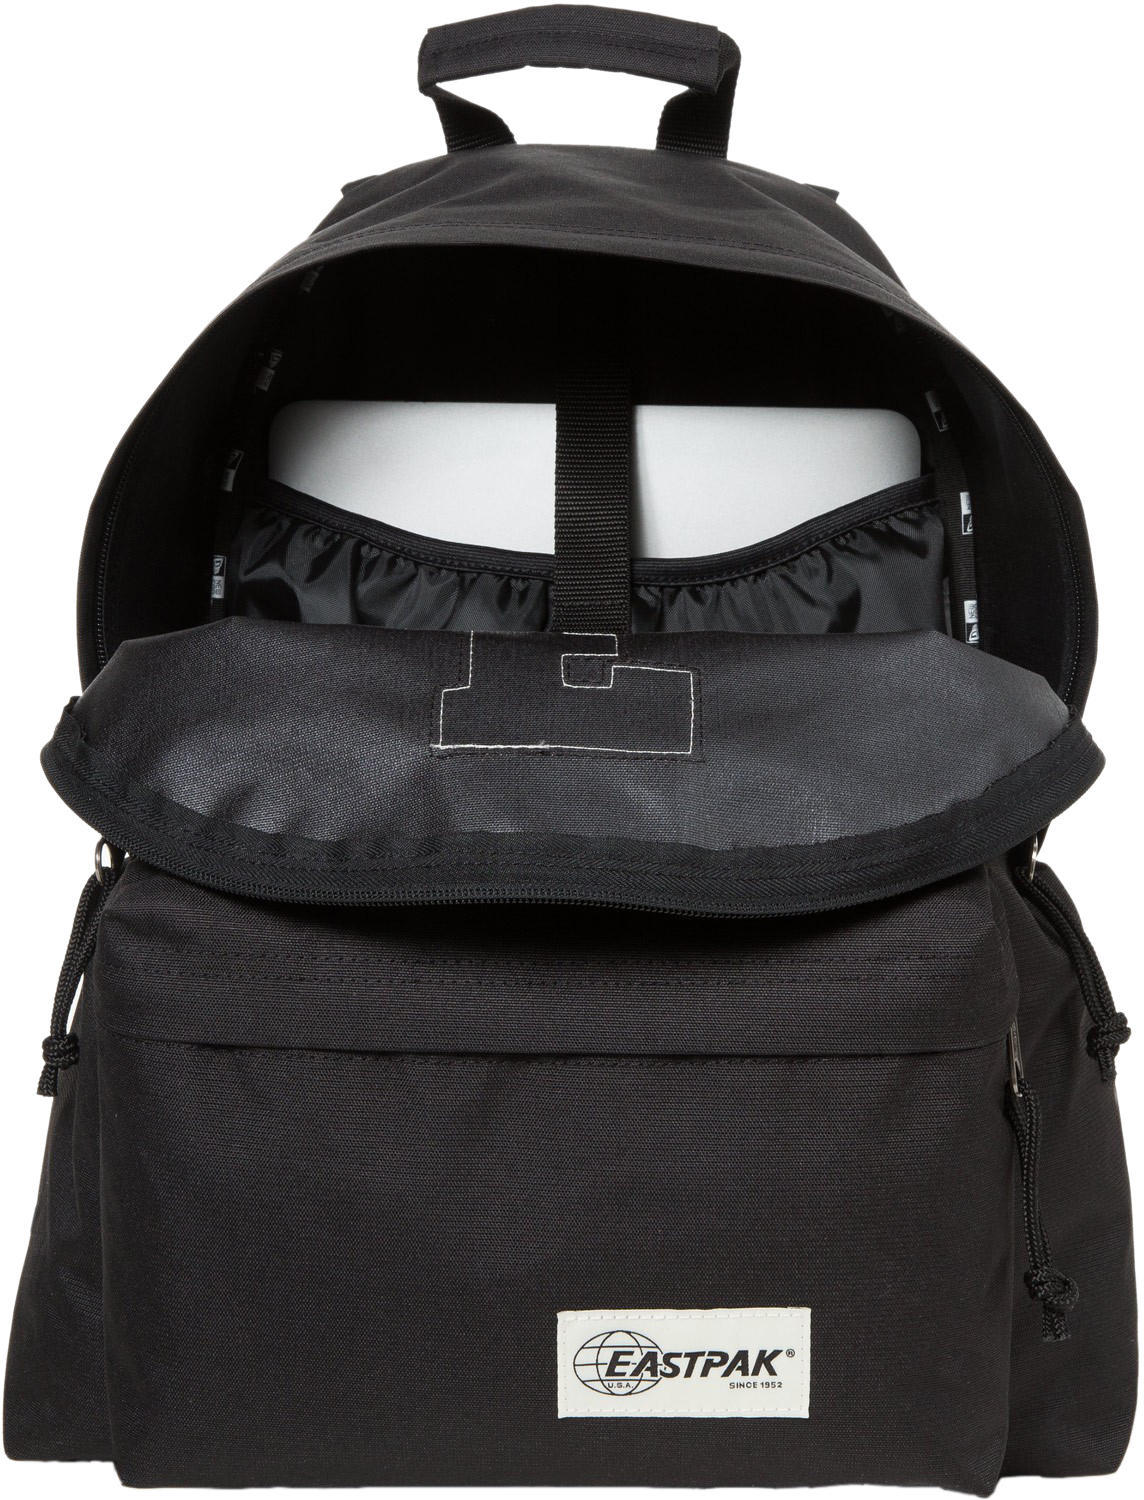 Eastpak Padded Pak R Leather Backpack In Black For Men: Eastpak Padded Pak'R Backpack Rucksack Bag